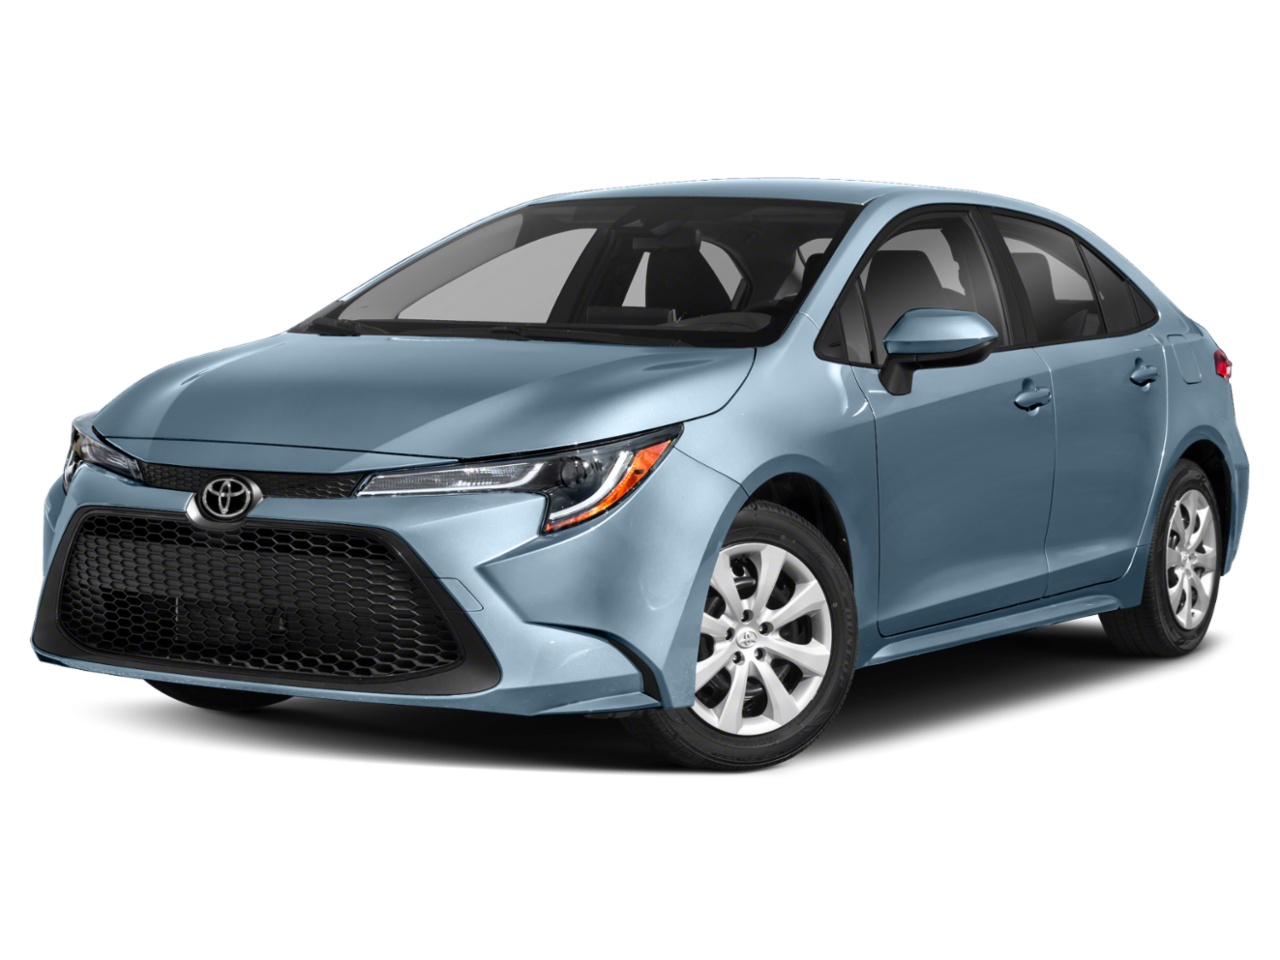 Toyota Corolla 2020 - View Specs, Prices, Photos & More | Driving